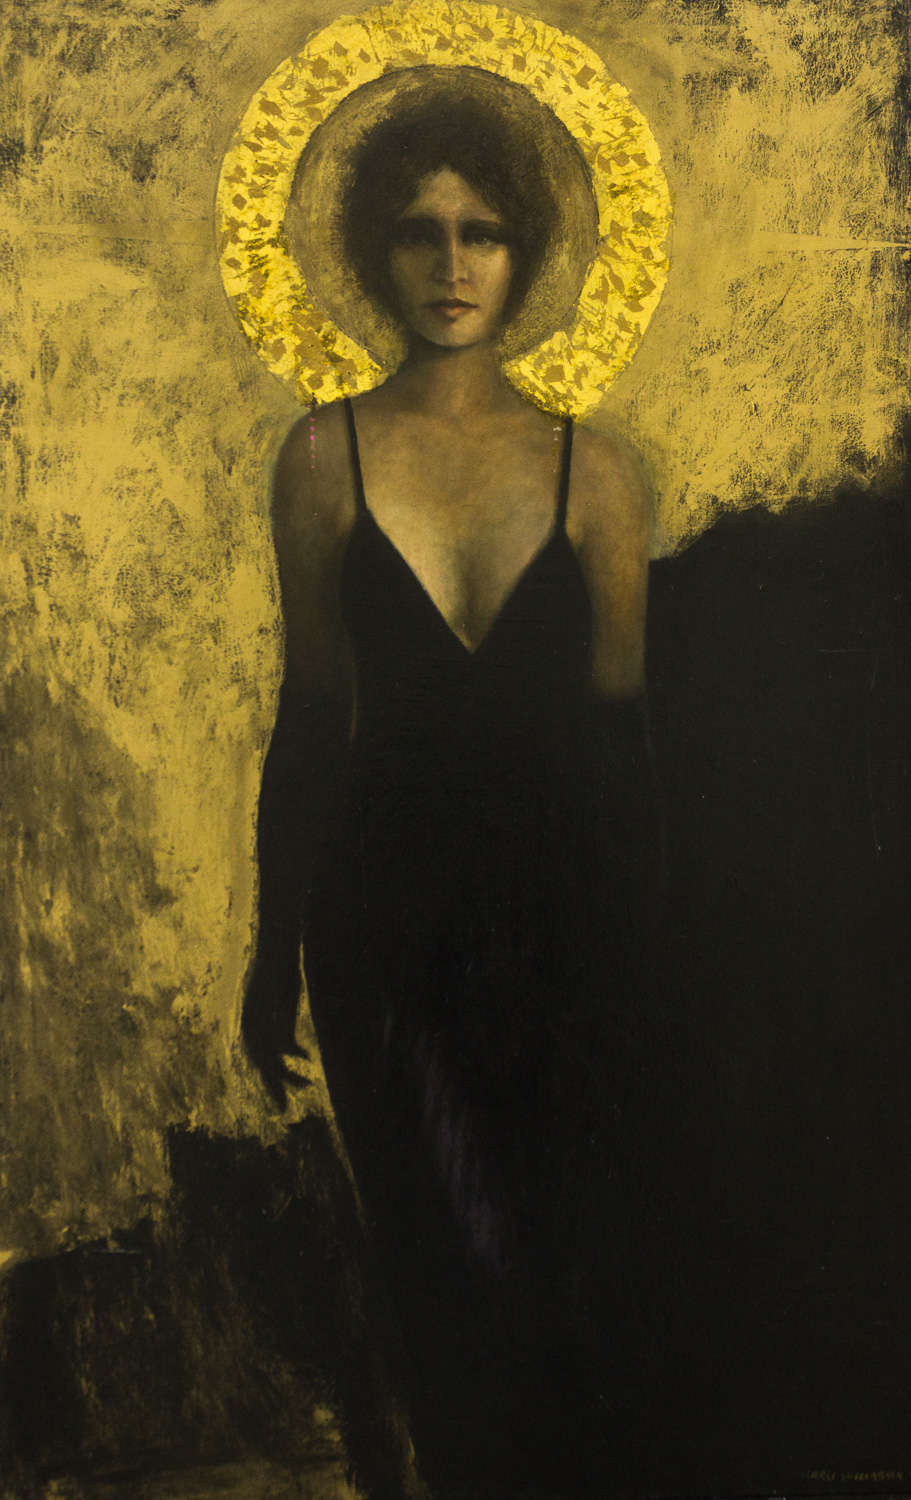 Deathless She Shall Reign by Sergei (Larry) Shillabeer, 1991, Oil on Canvas, Cheaha Exhibition Purch